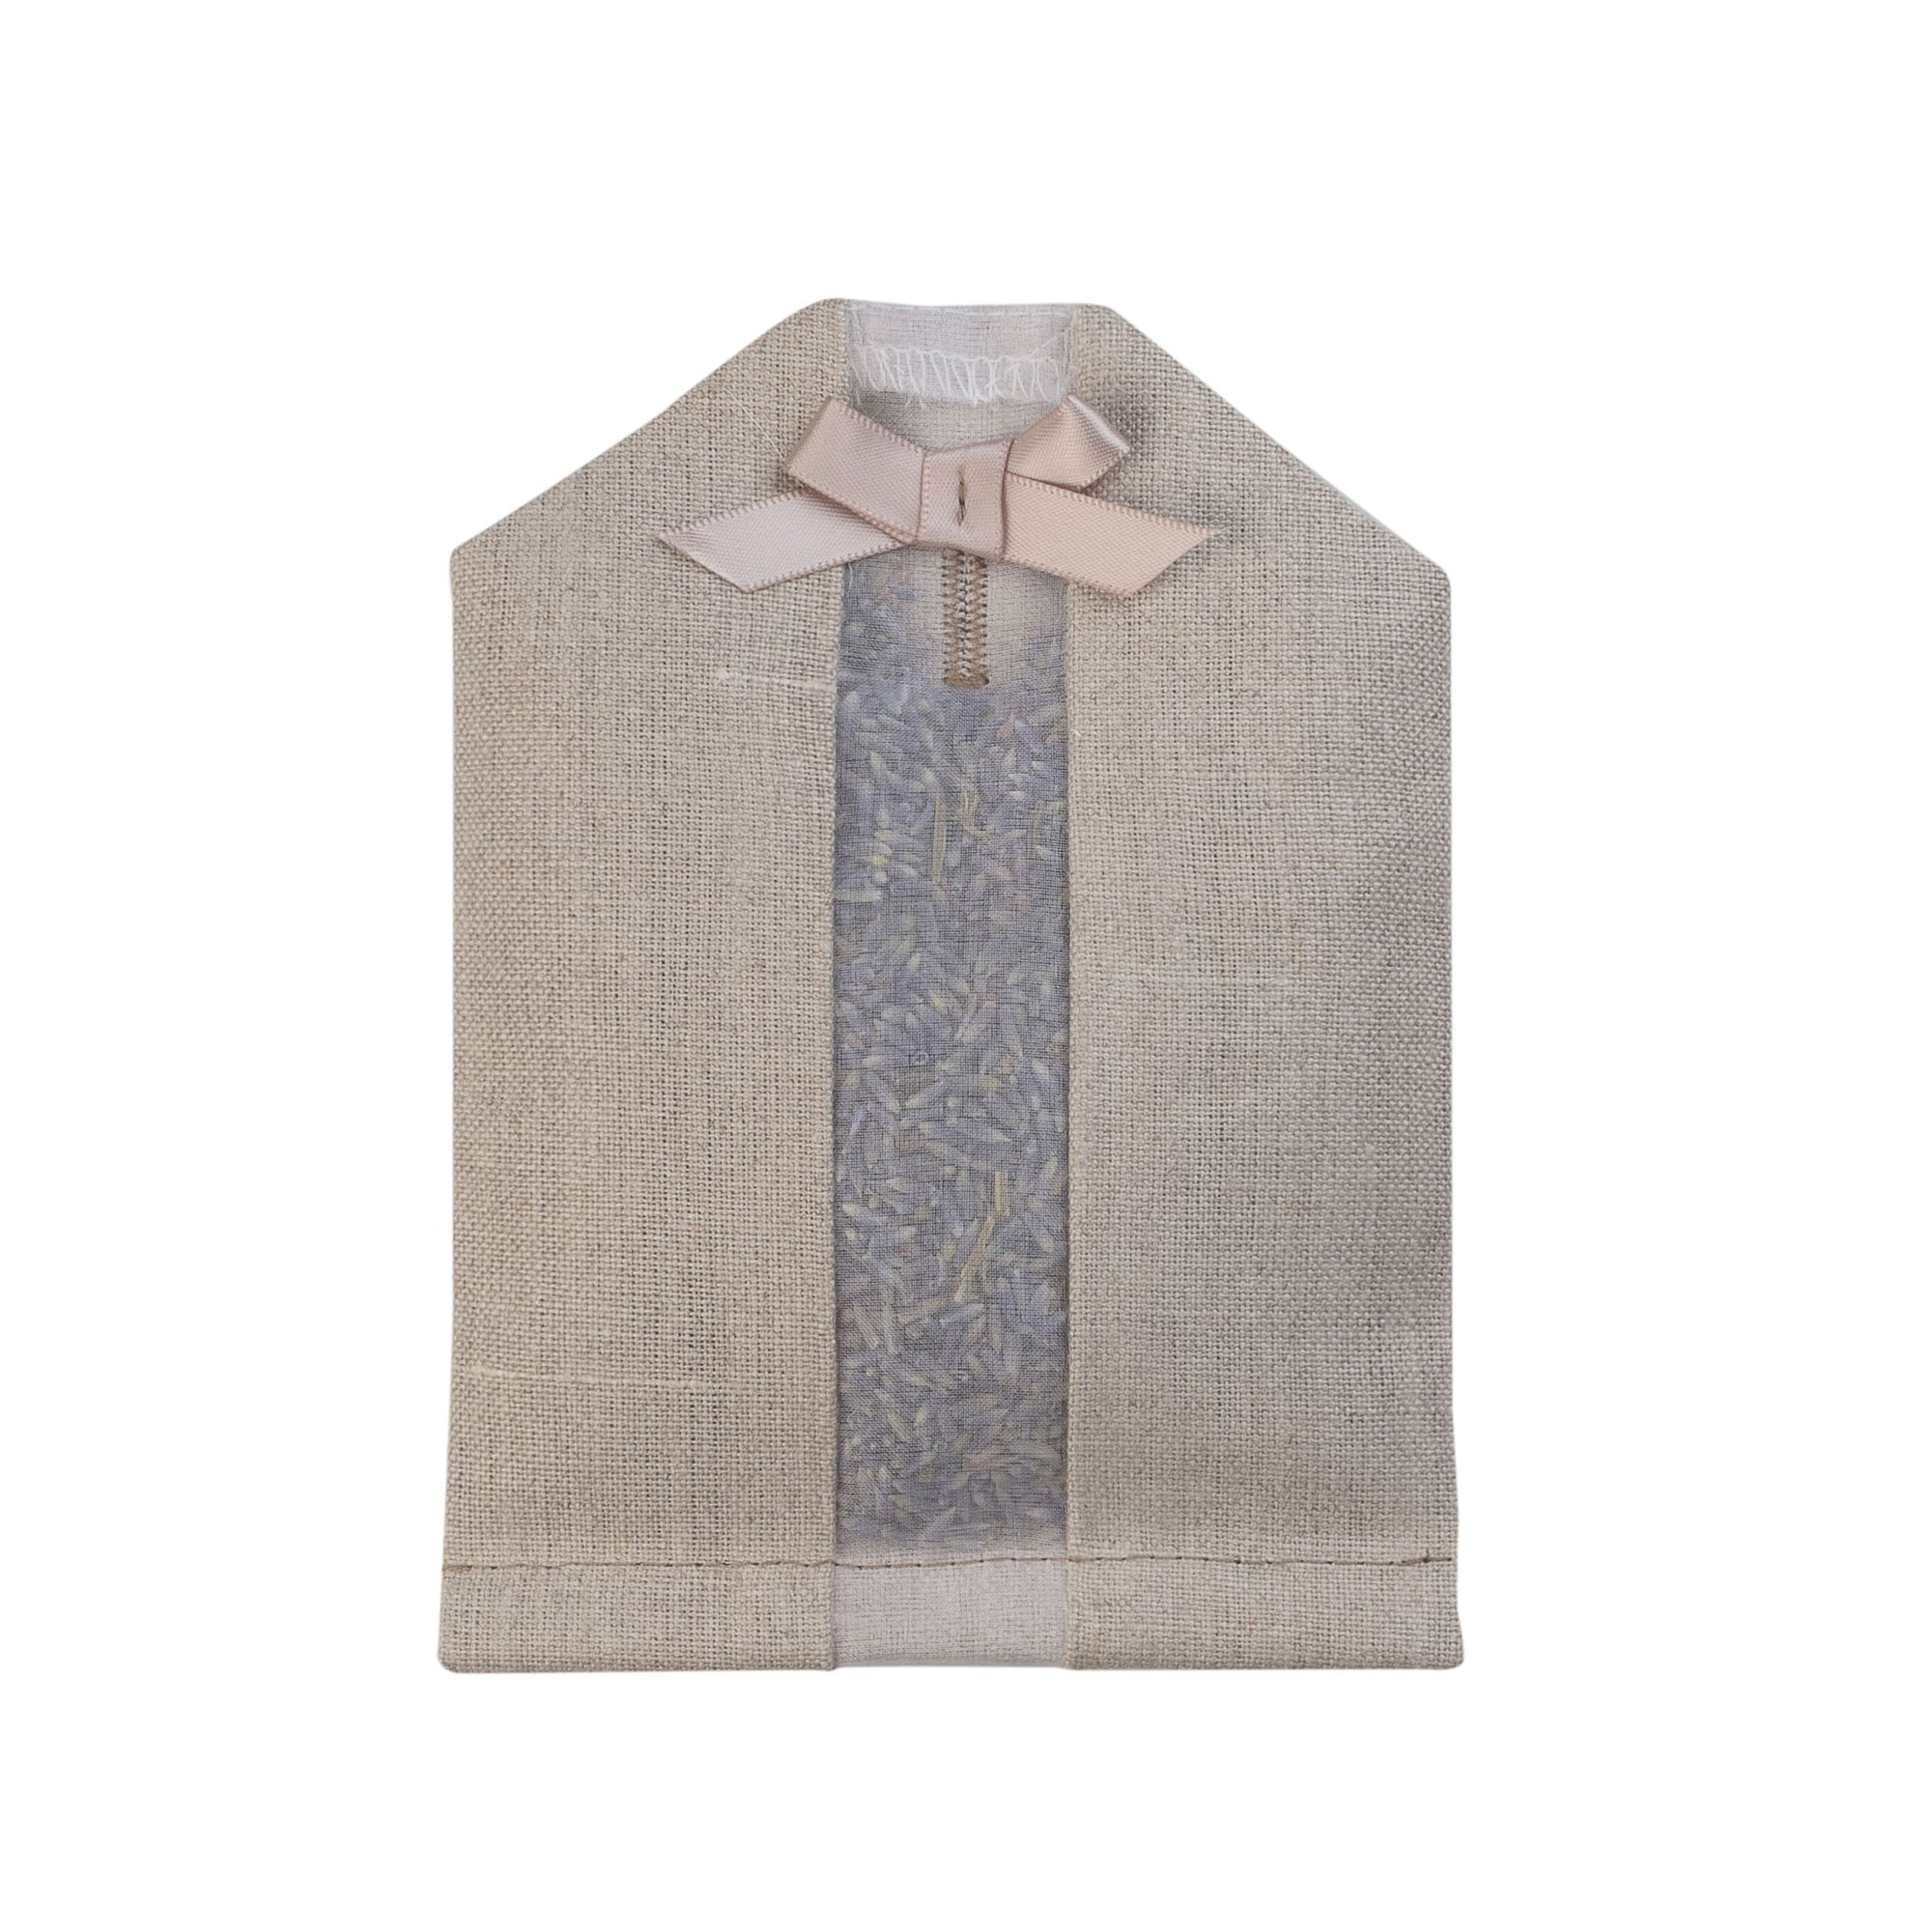 Lavender filled inside of an natural colored linen hanger sachet